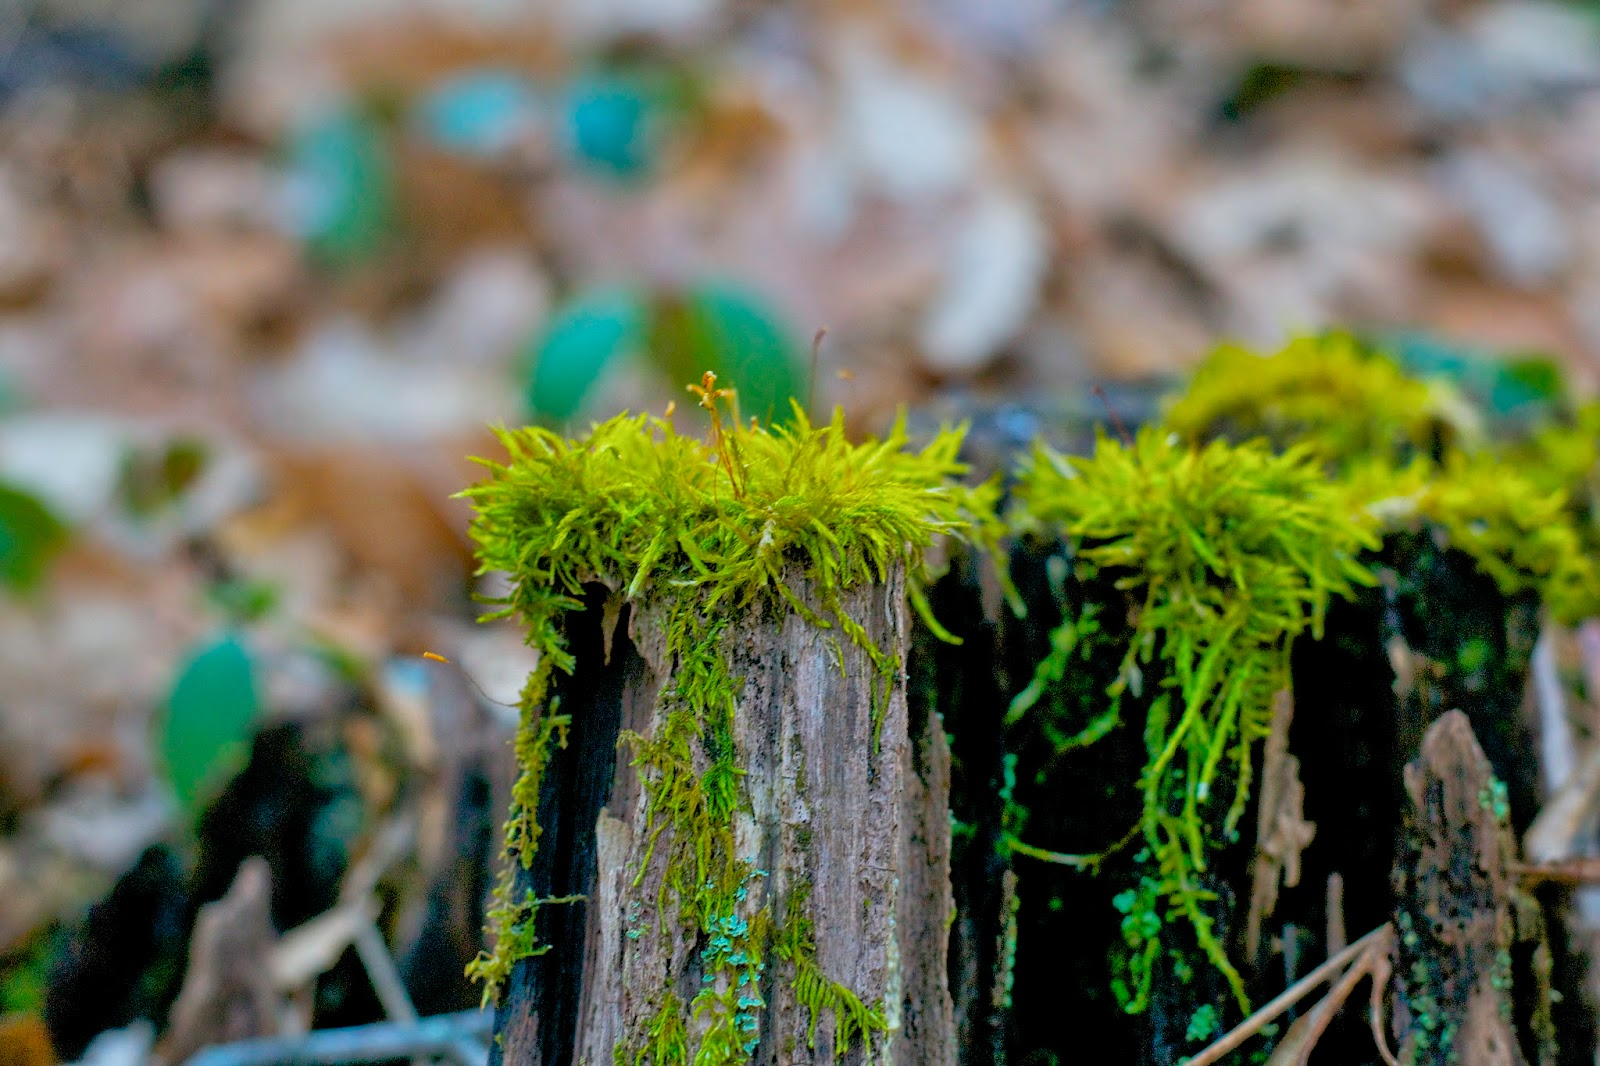 moss sits vibrantly on a decaying log